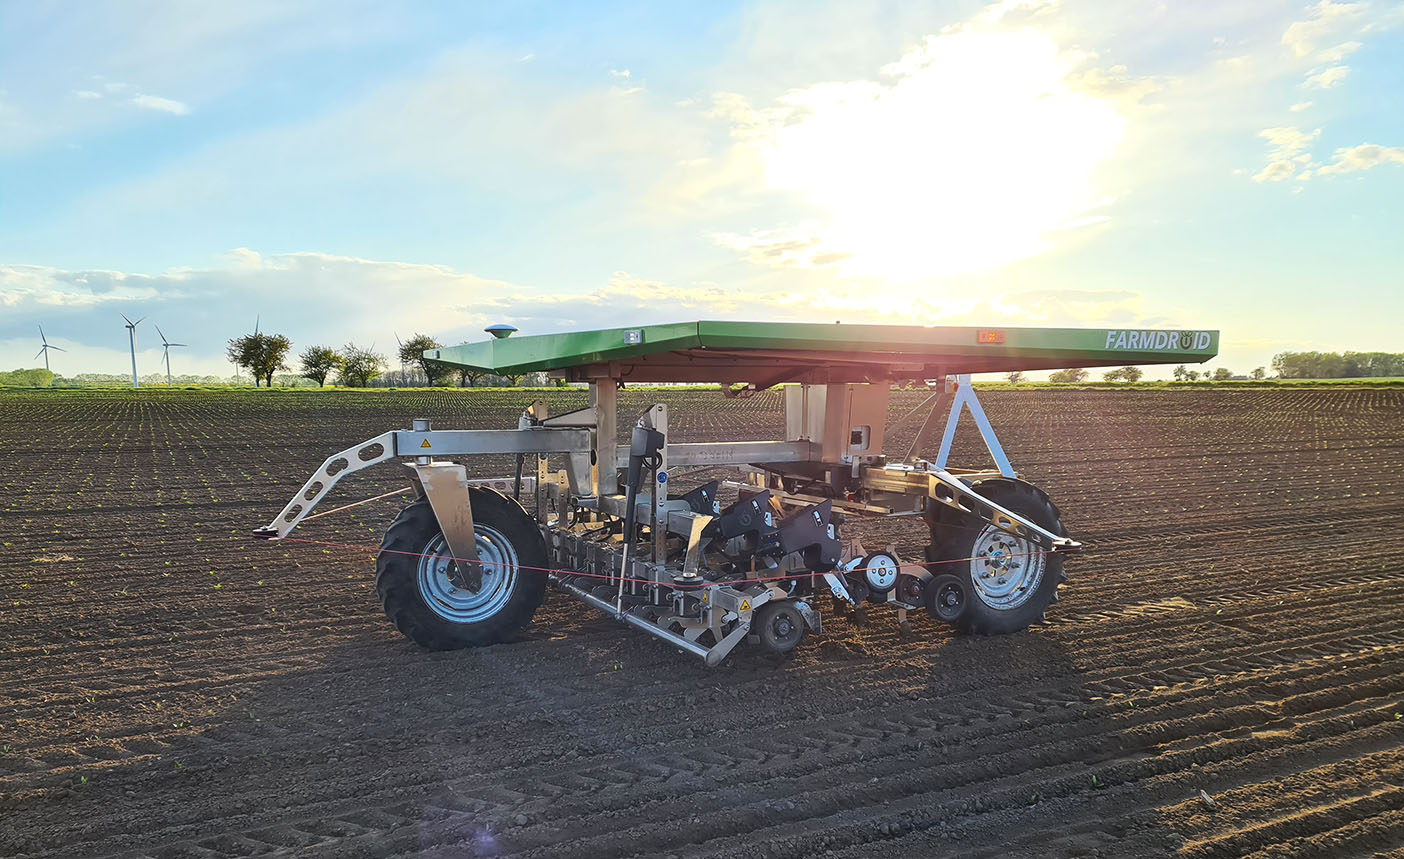 06.Farmdroid suggests that its robots could work unsupervised for the season with the aid of a geofence, offering a viable alternative to spraying for non-organic sugar beet